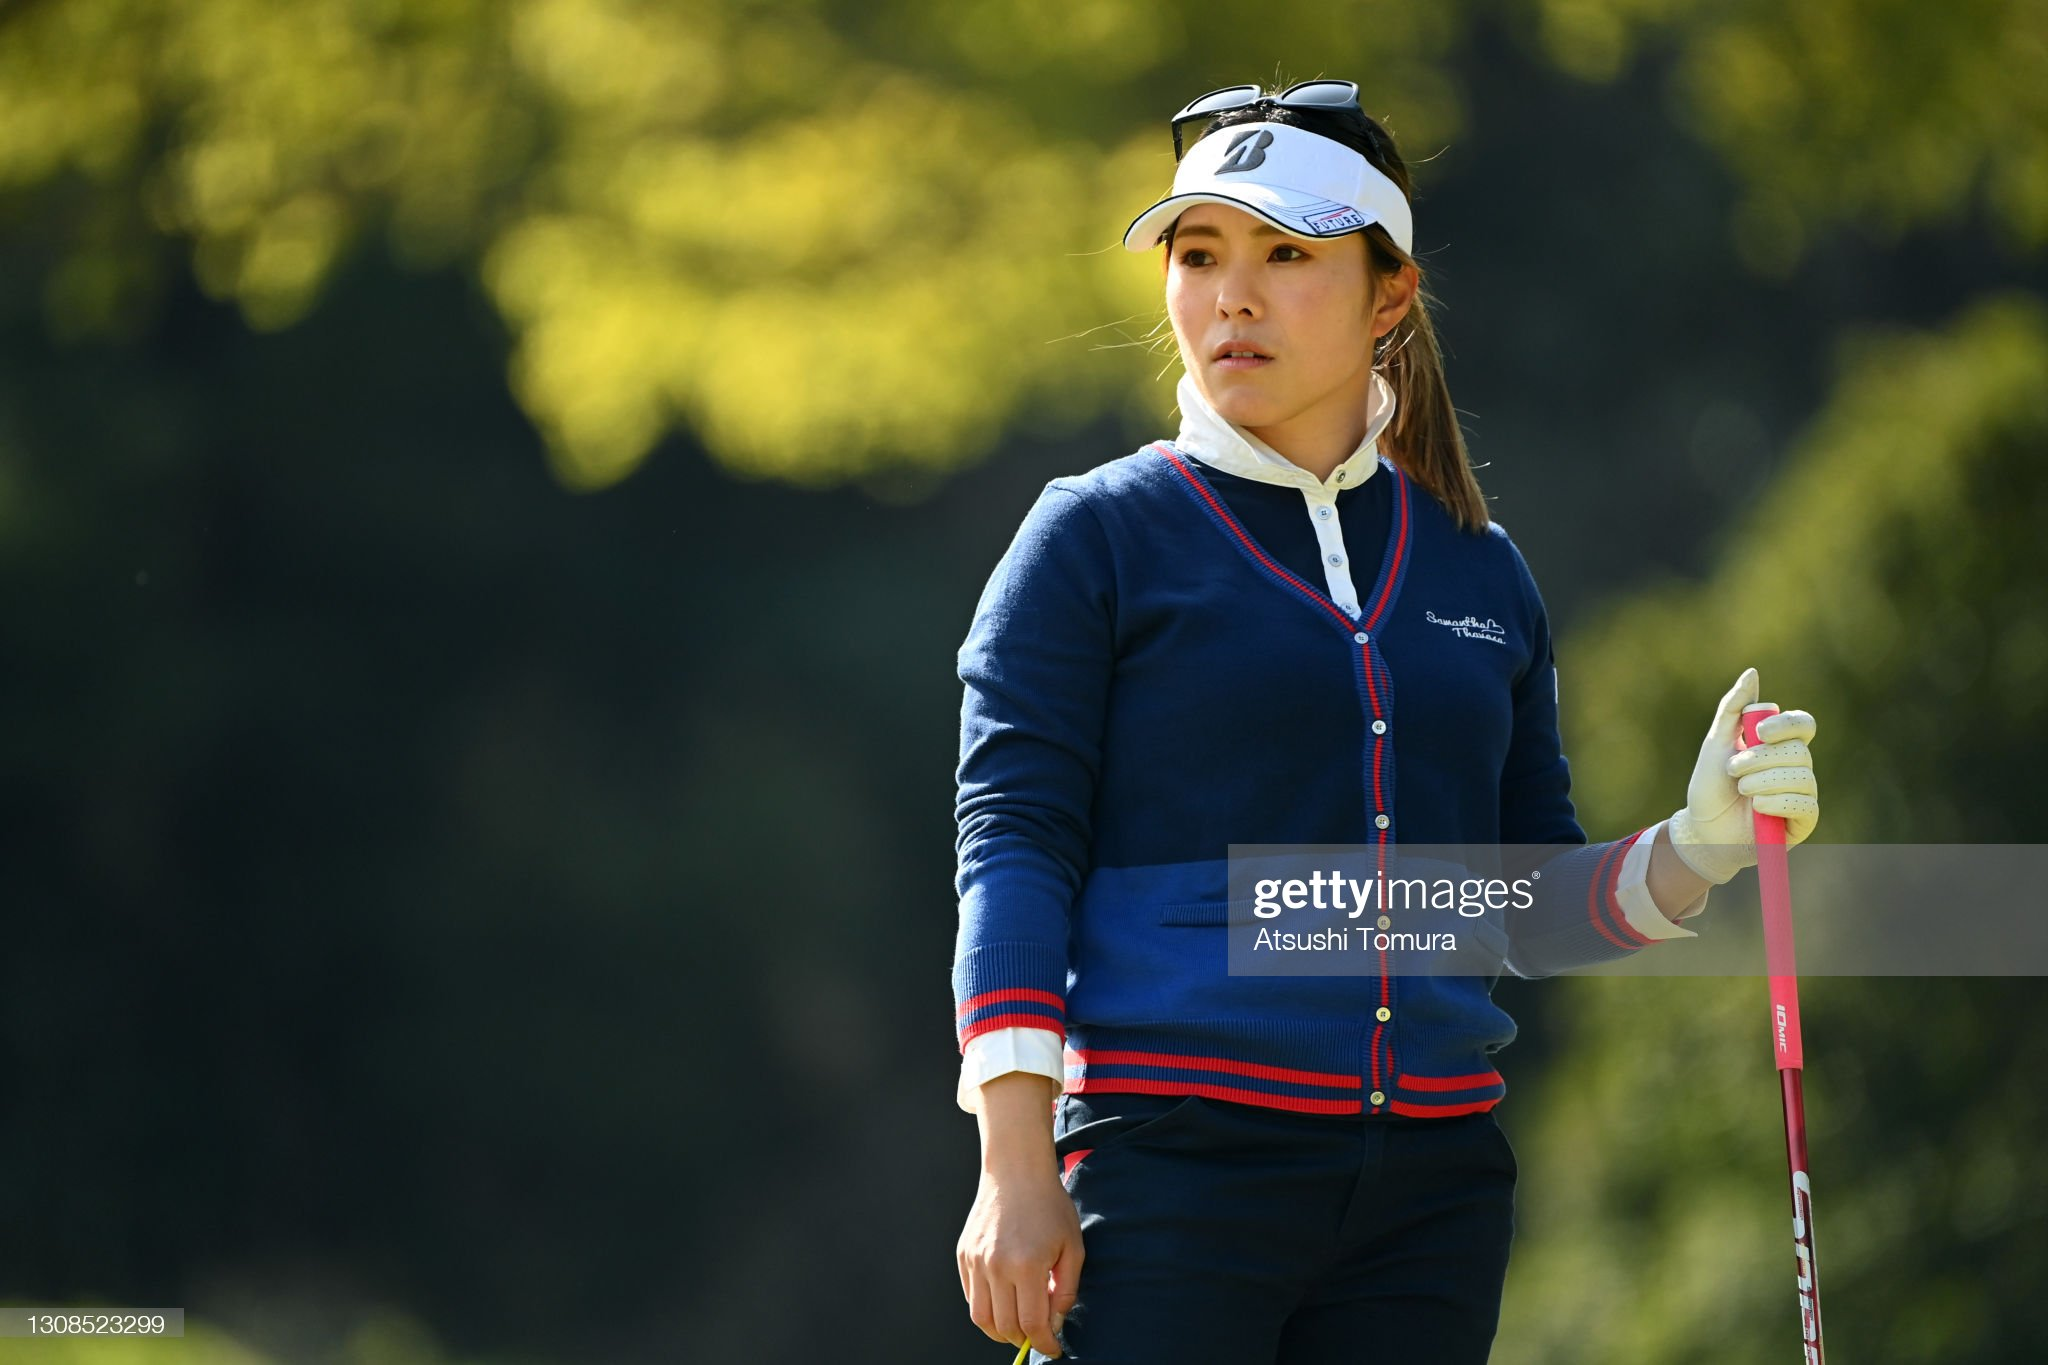 https://media.gettyimages.com/photos/natsuka-hori-of-japan-is-seen-on-the-3rd-tee-during-the-first-round-picture-id1308523299?s=2048x2048